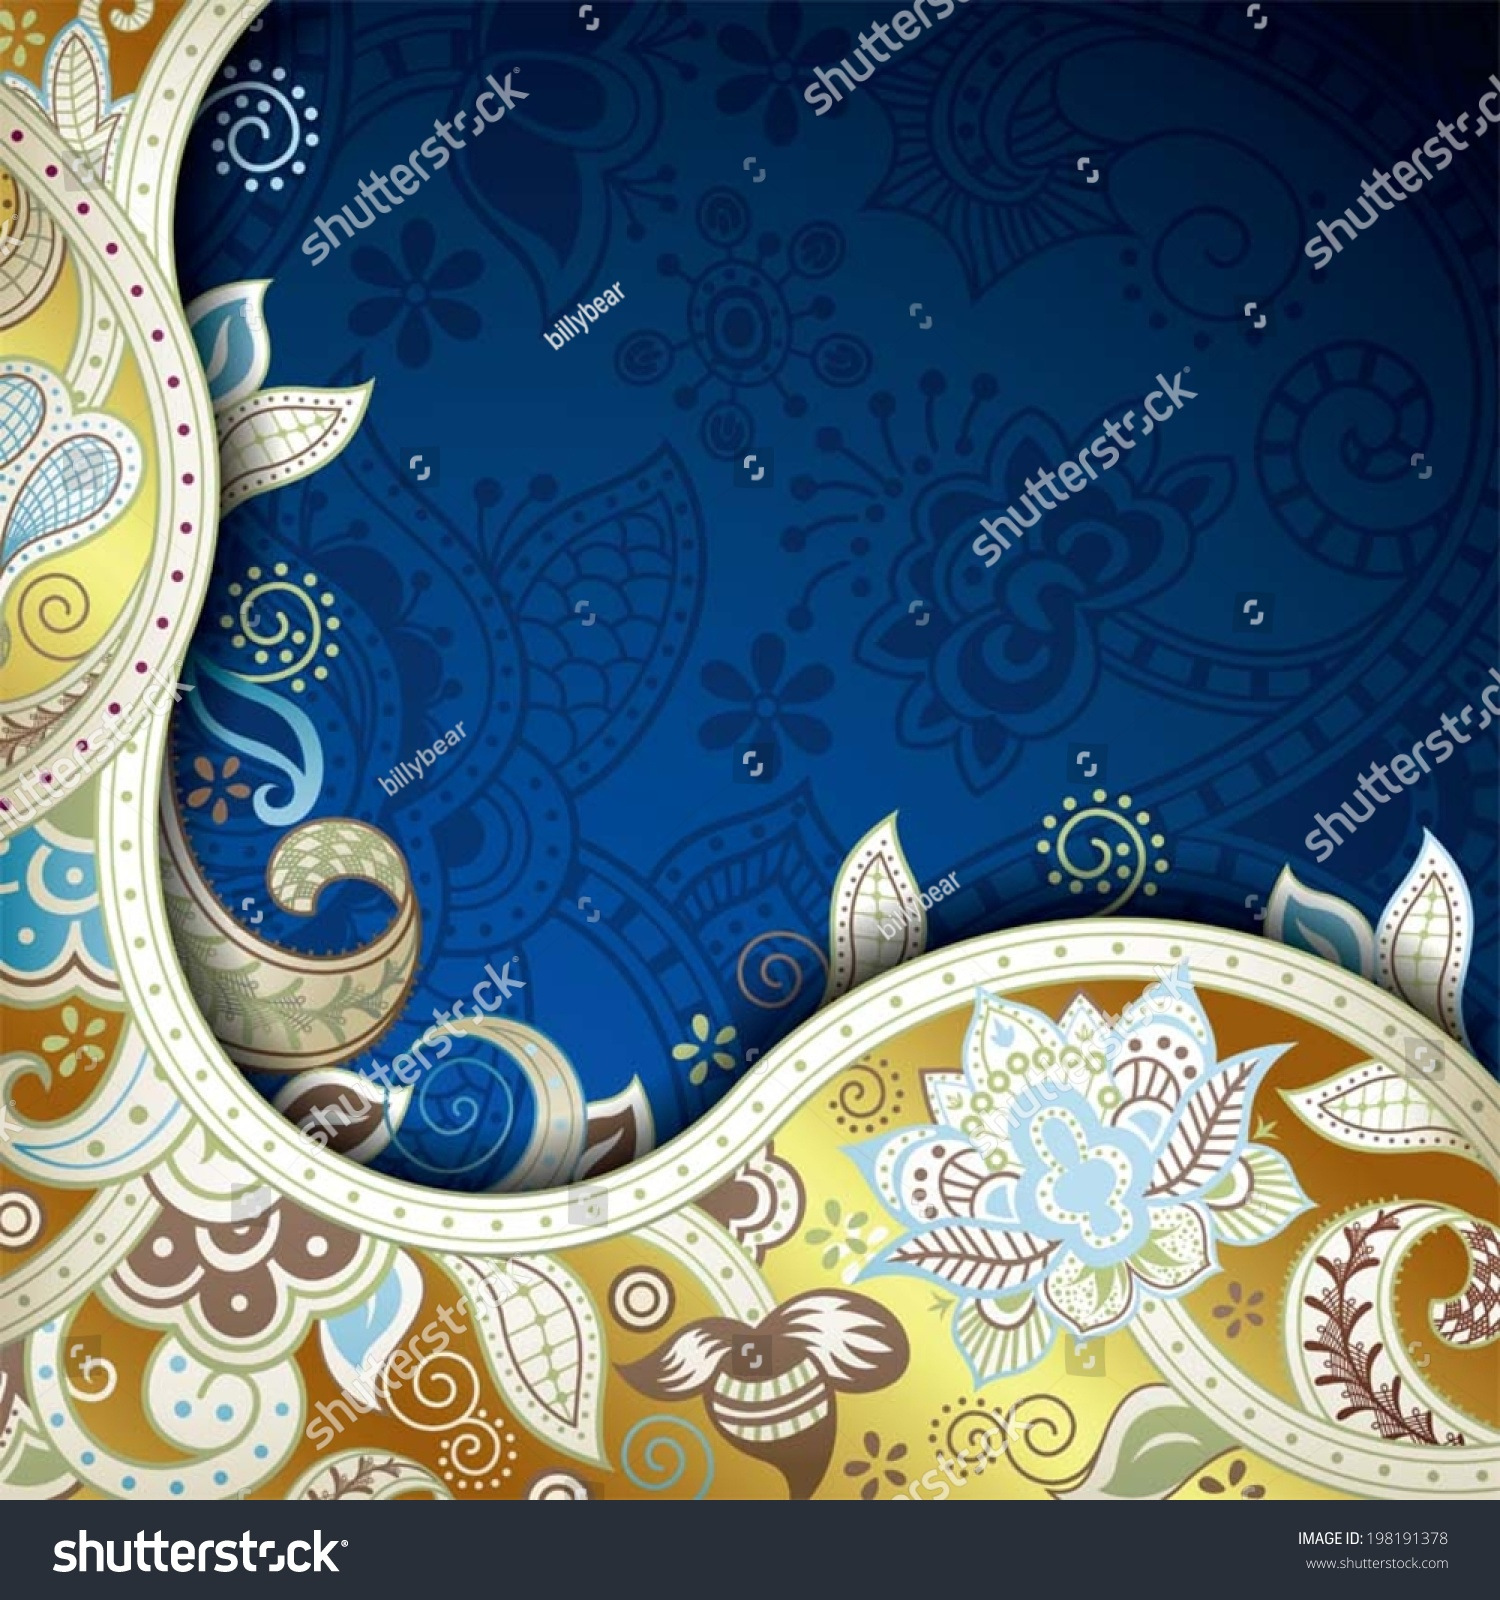 Abstract Blue And Gold Floral Background